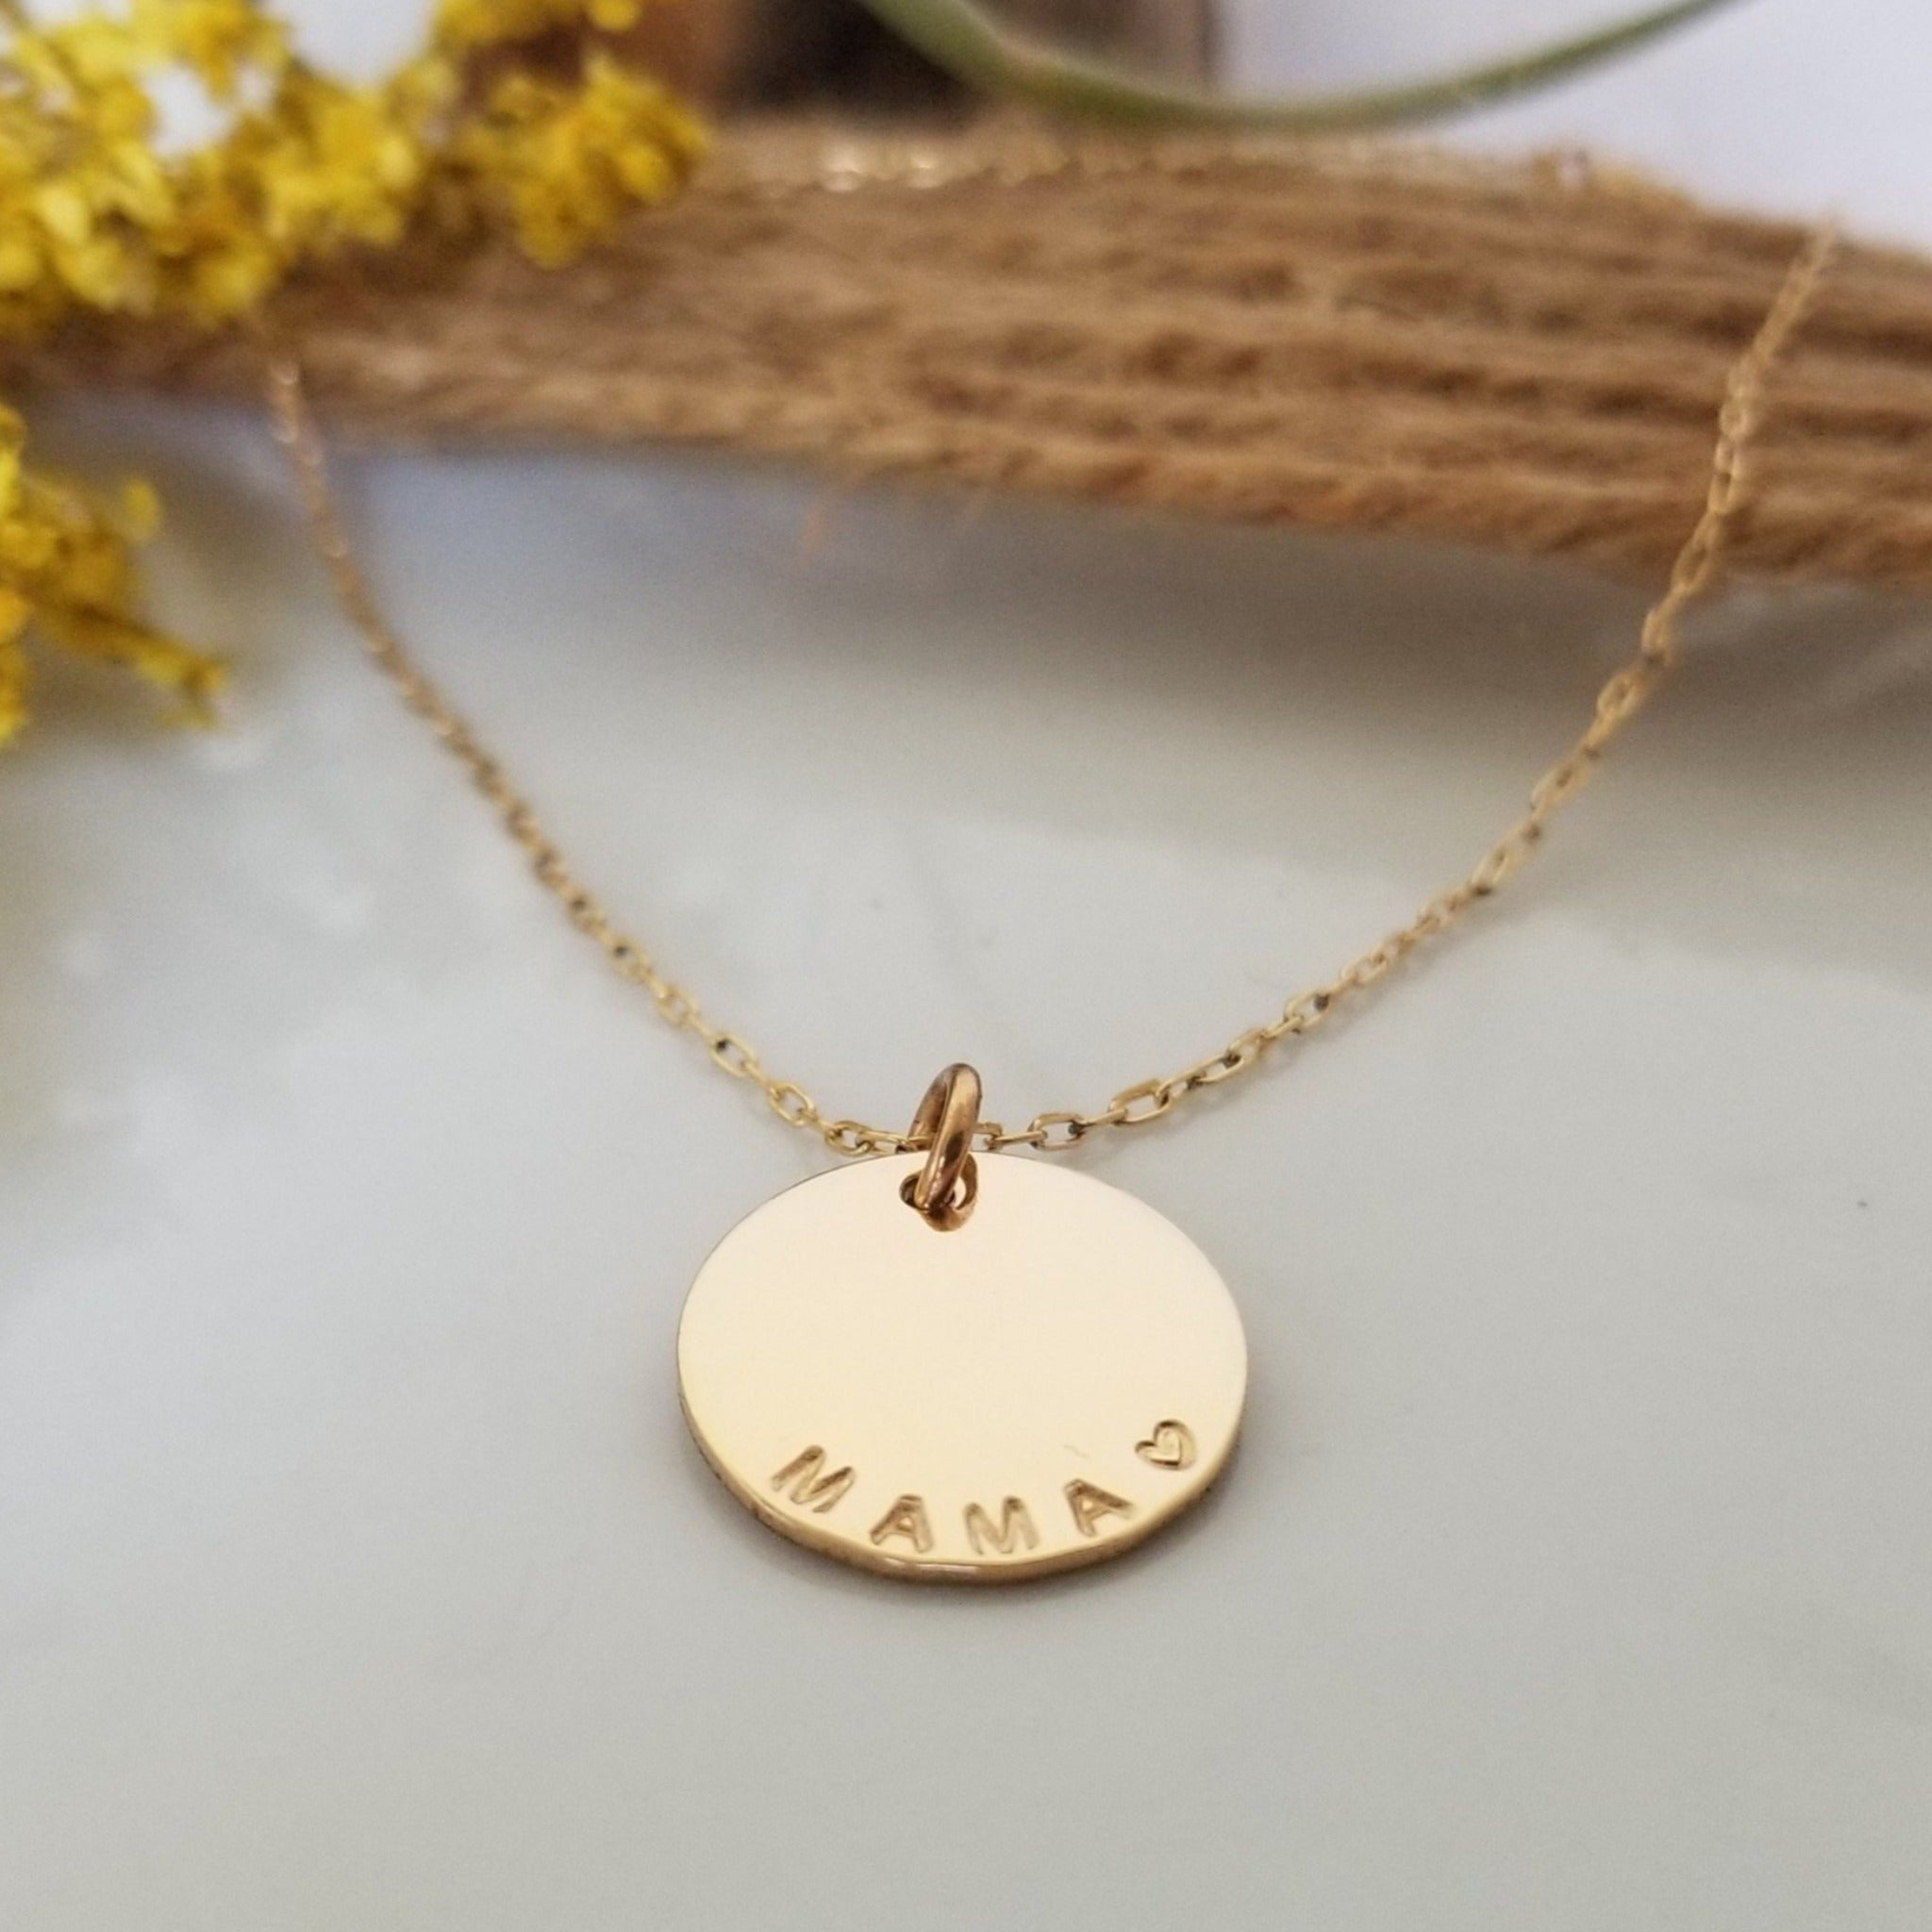 Custom Medium Initial Necklace - 5/8 Inch - Sterling, Gold, or Rose Gold